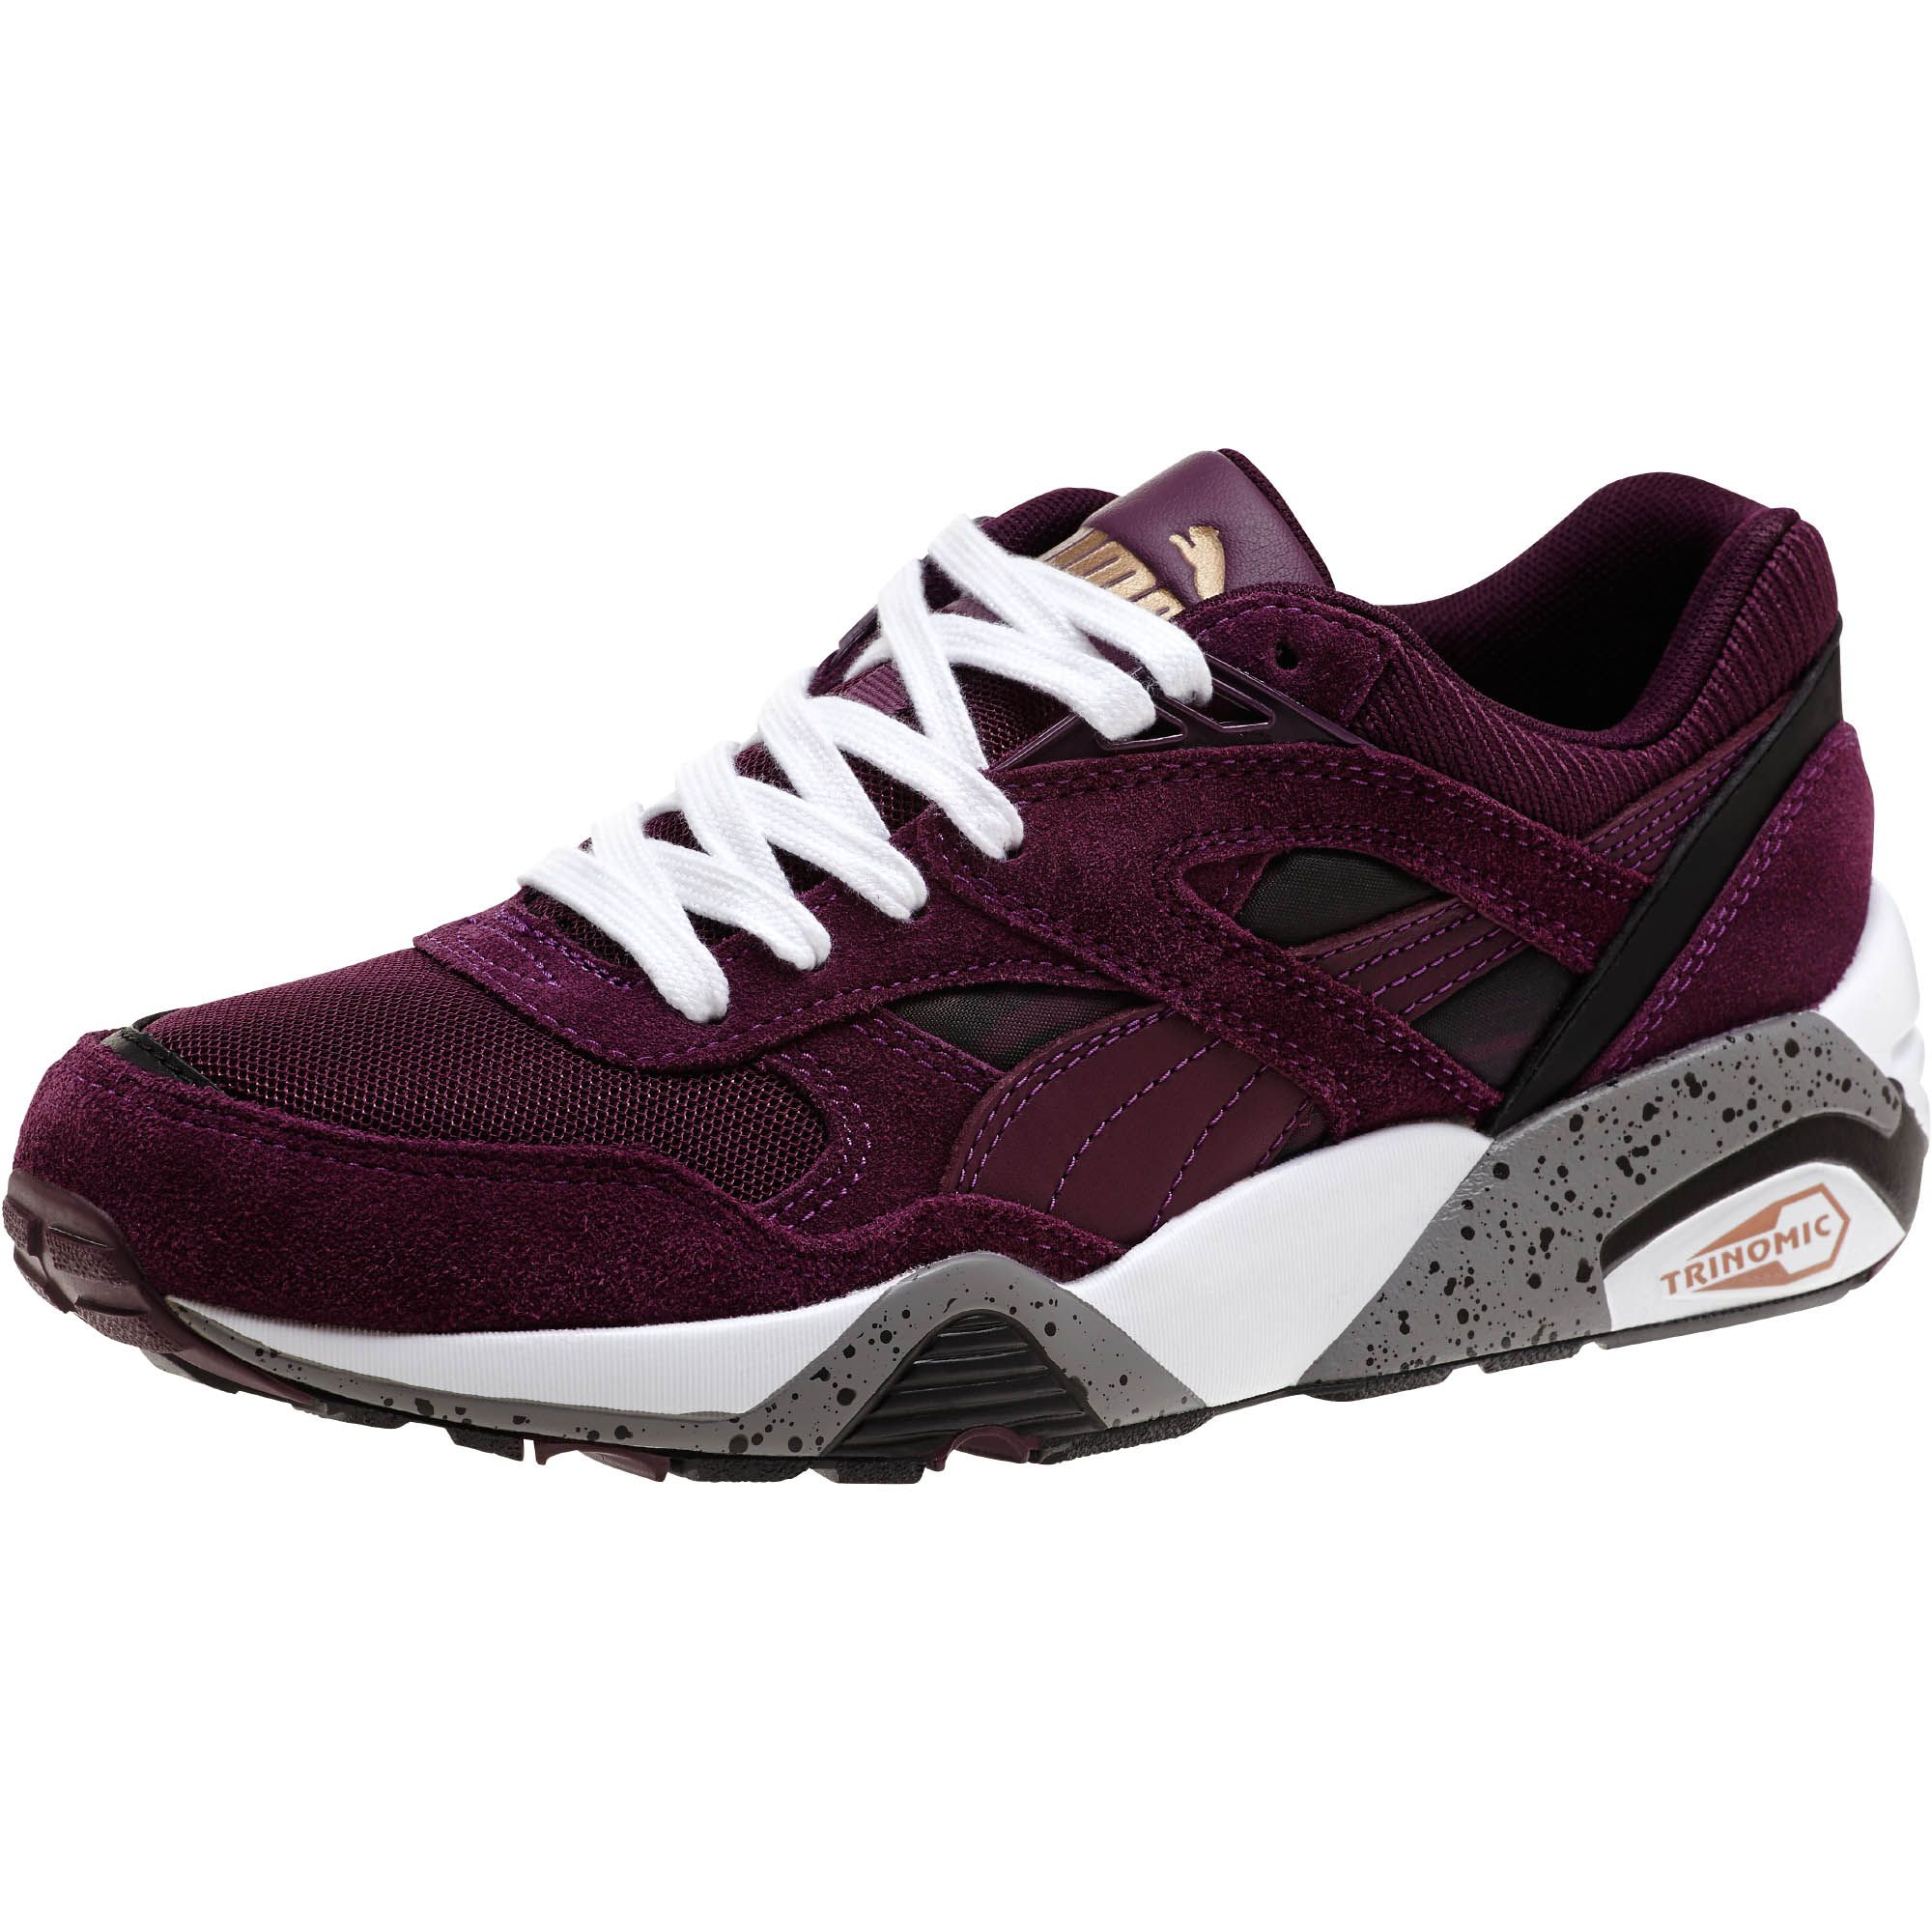 PUMA Womens R698 Fast Graphic Sneakers